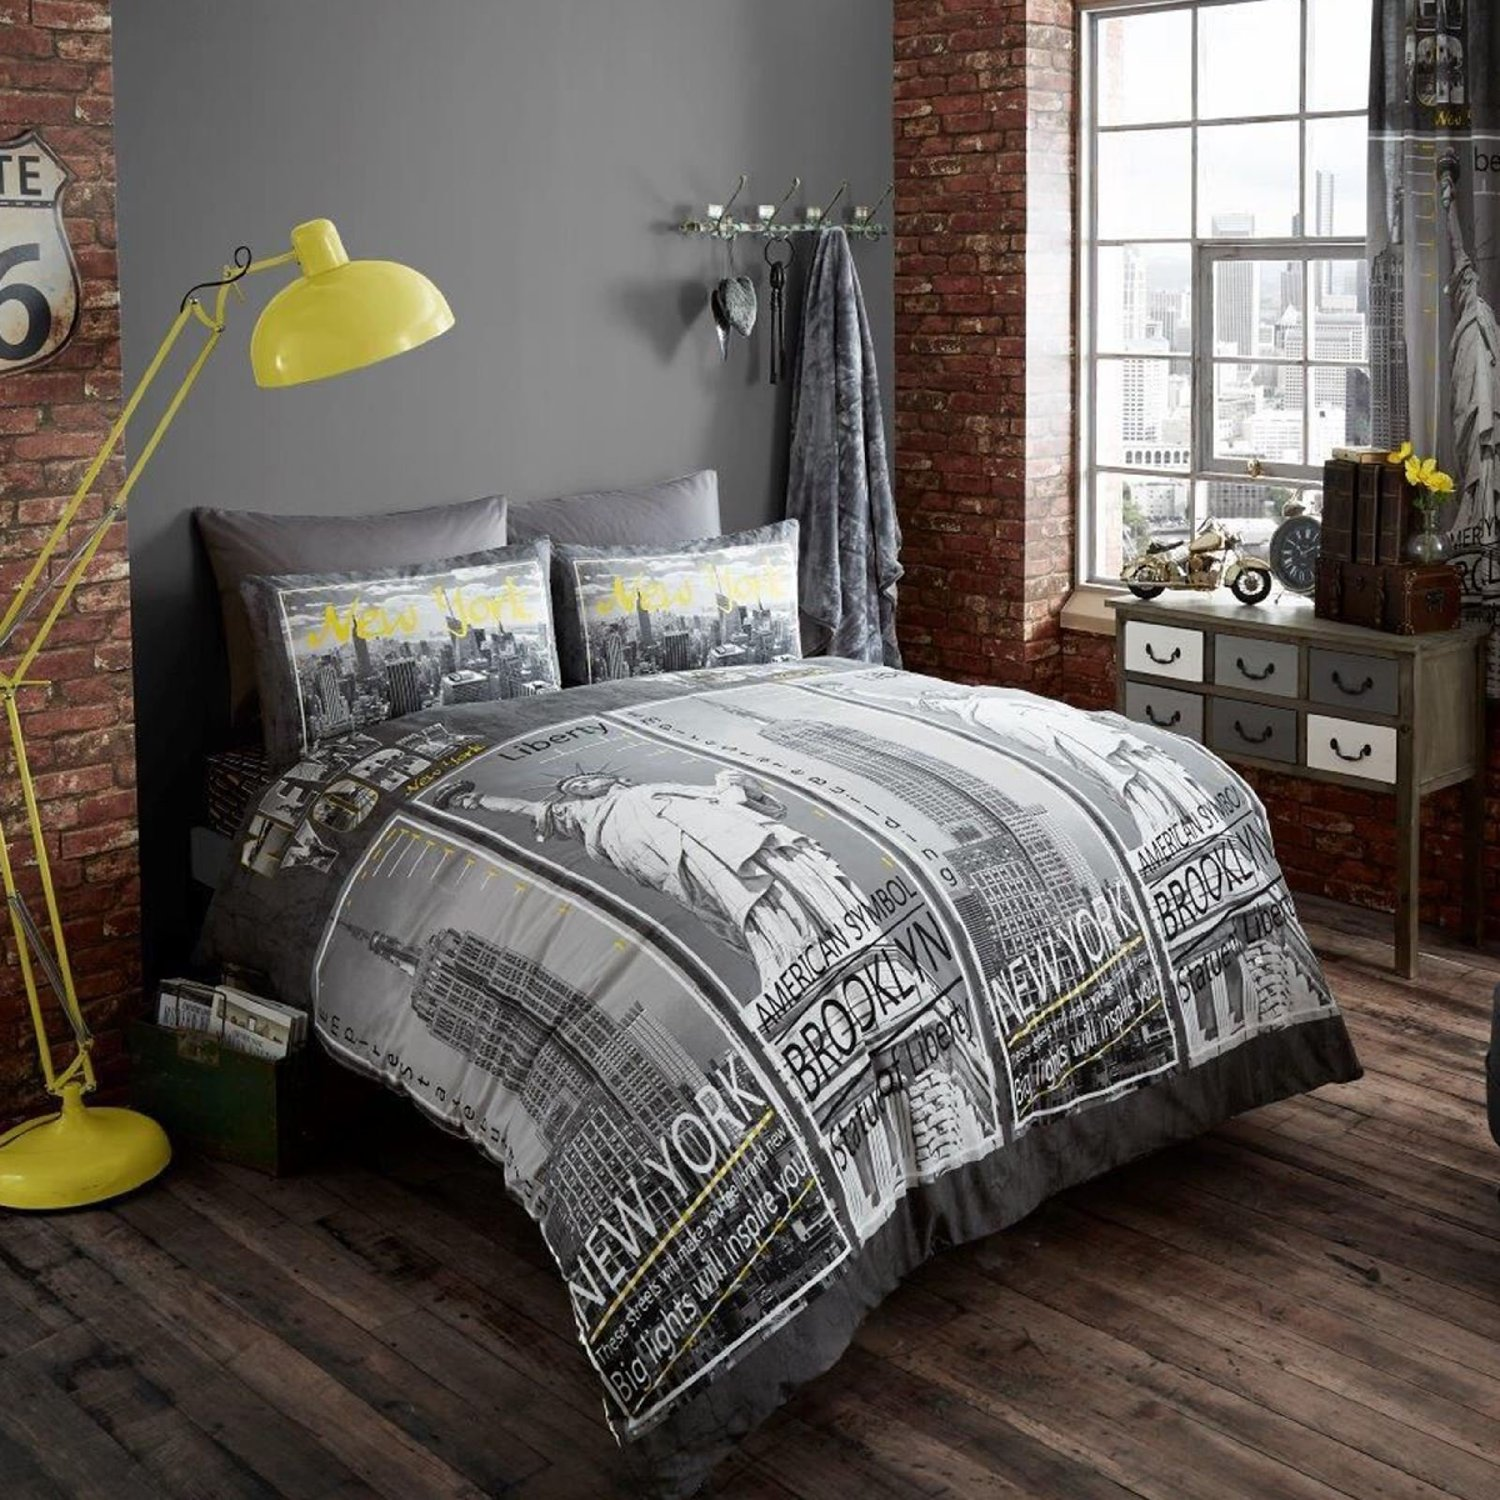 Budget Friendly  Your New York City Themed Bedding. Total Fab  New York City Skyline Bedding   NYC Themed Bedroom Ideas